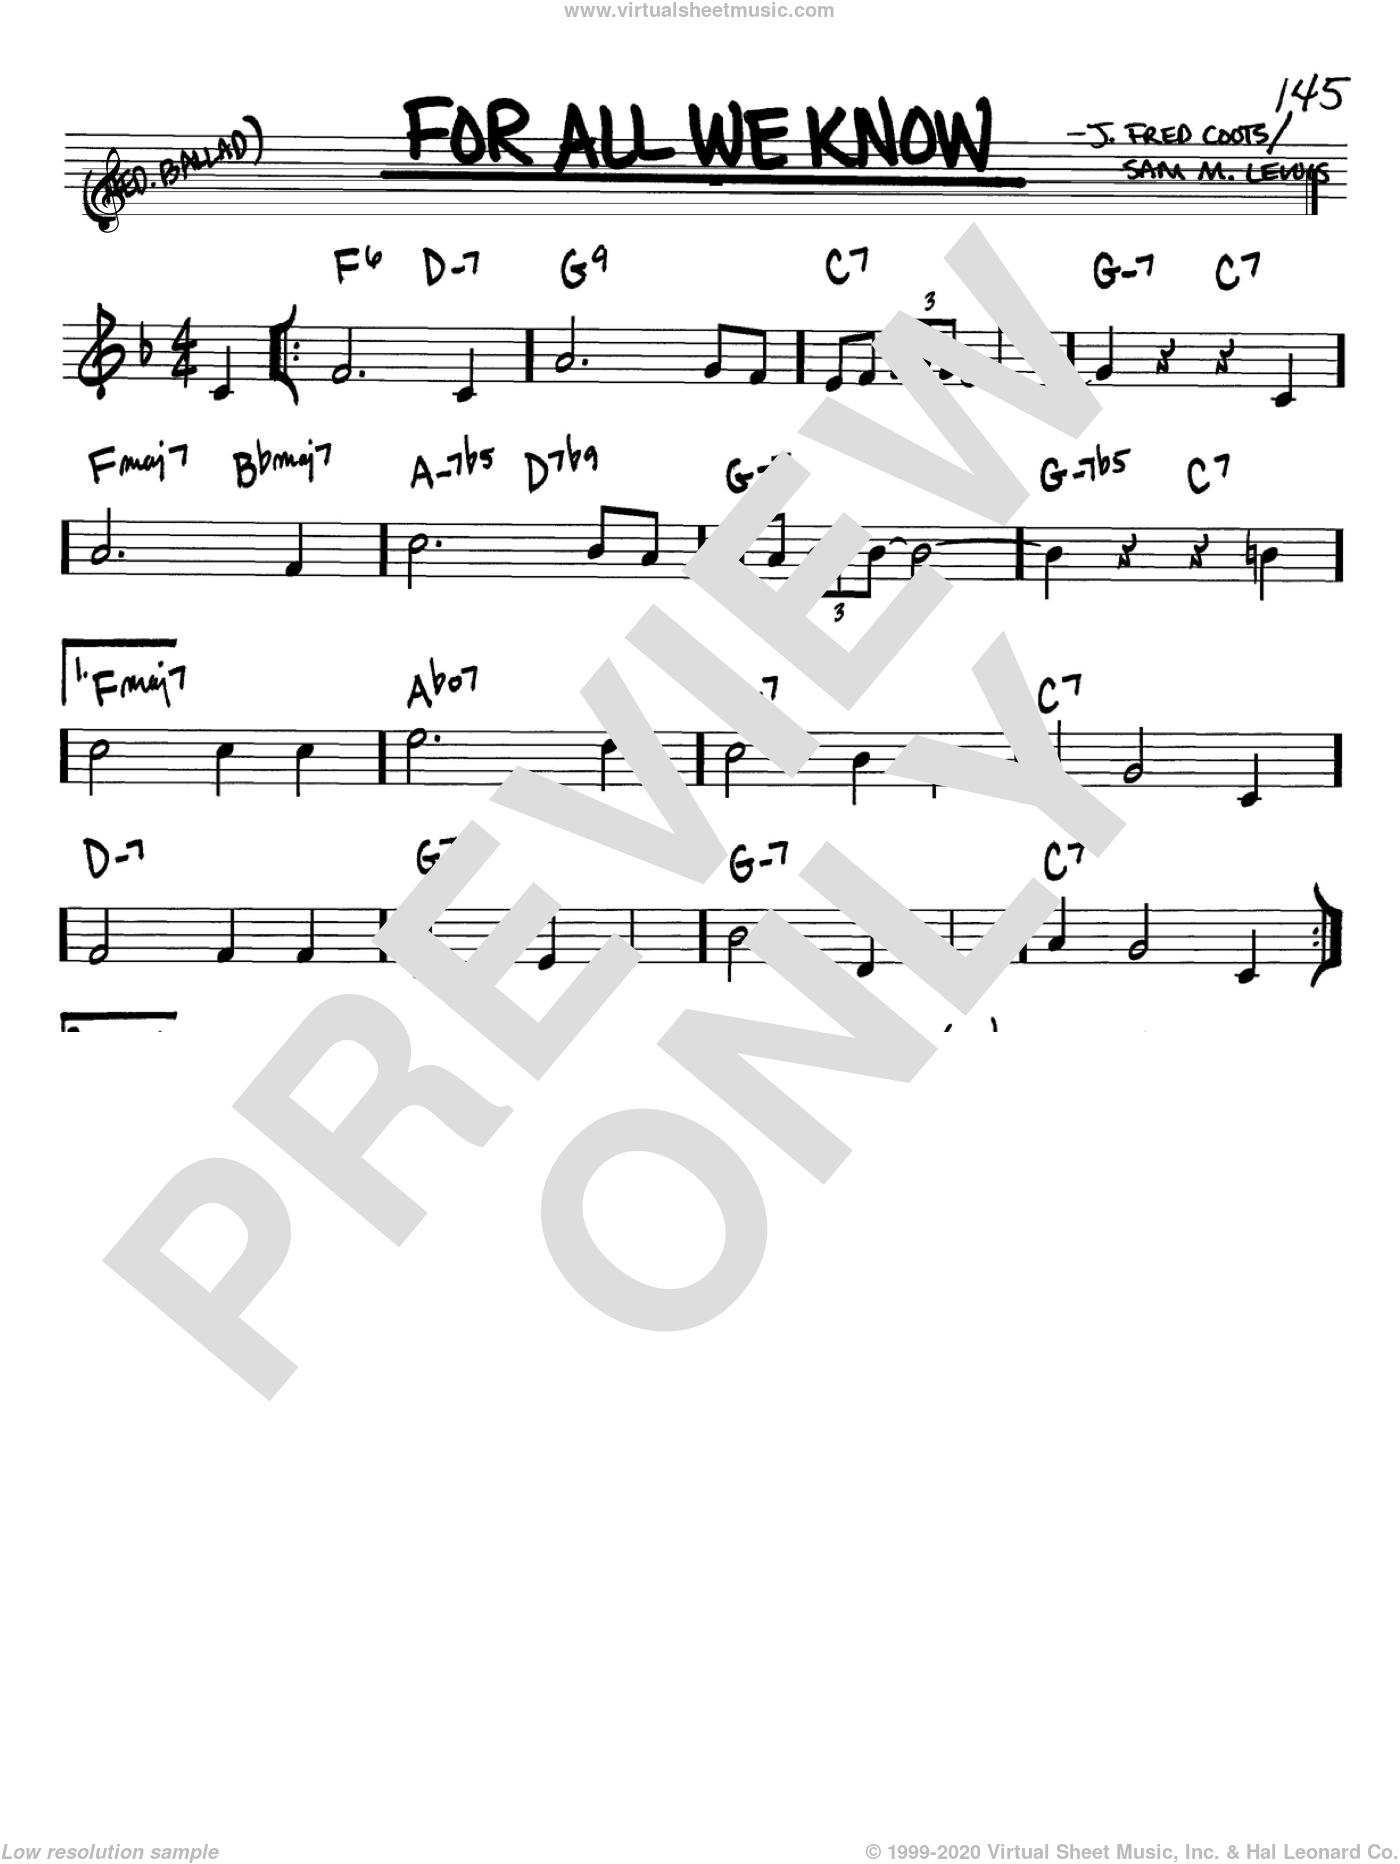 For All We Know sheet music for voice and other instruments (Bb) by J. Fred Coots